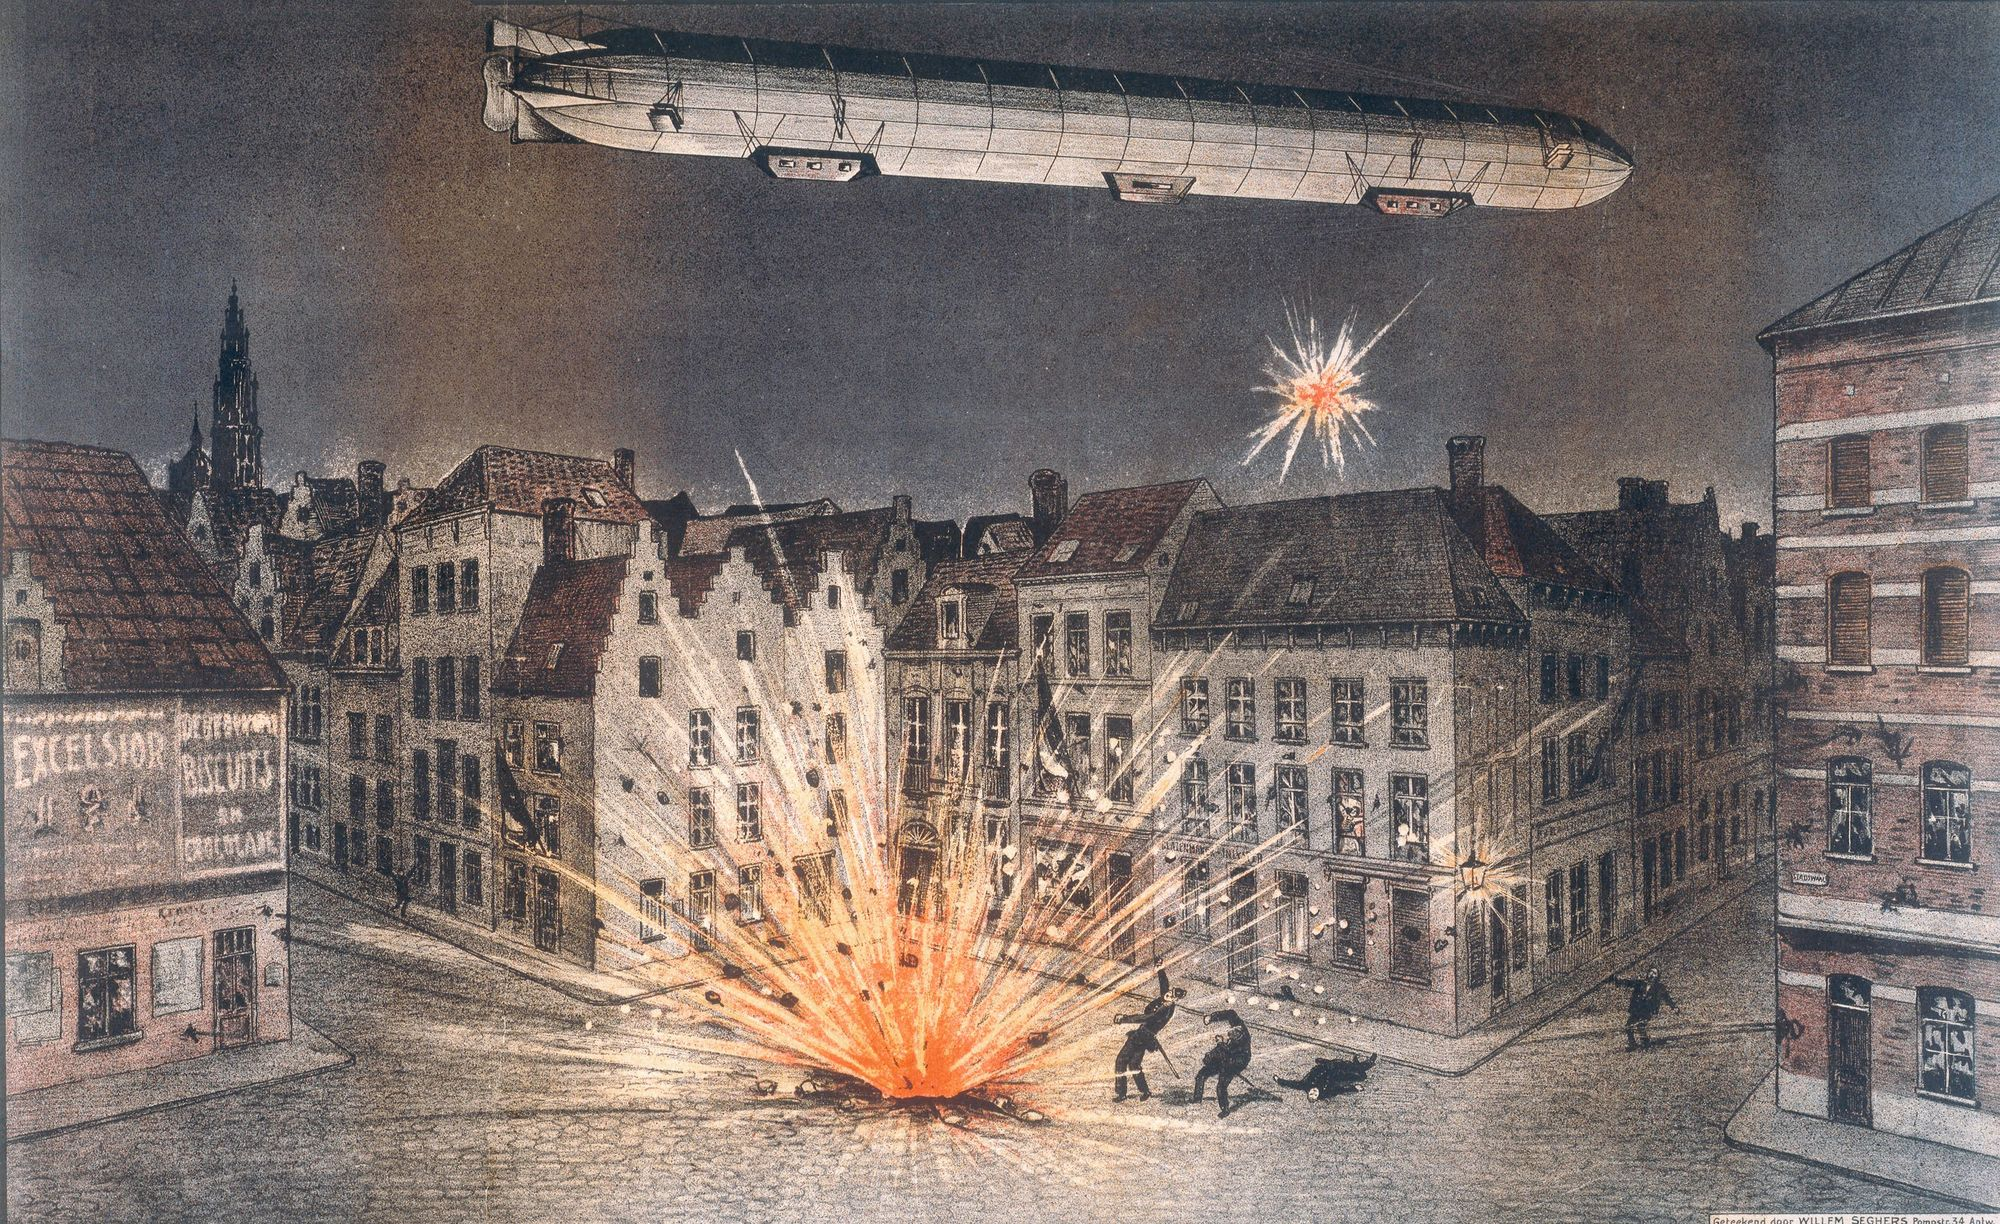 Willem Seghers, Bombardement d'Anvers, 1914, lithographie, 42 x 62 cm, Imperial War Museum, Londres.